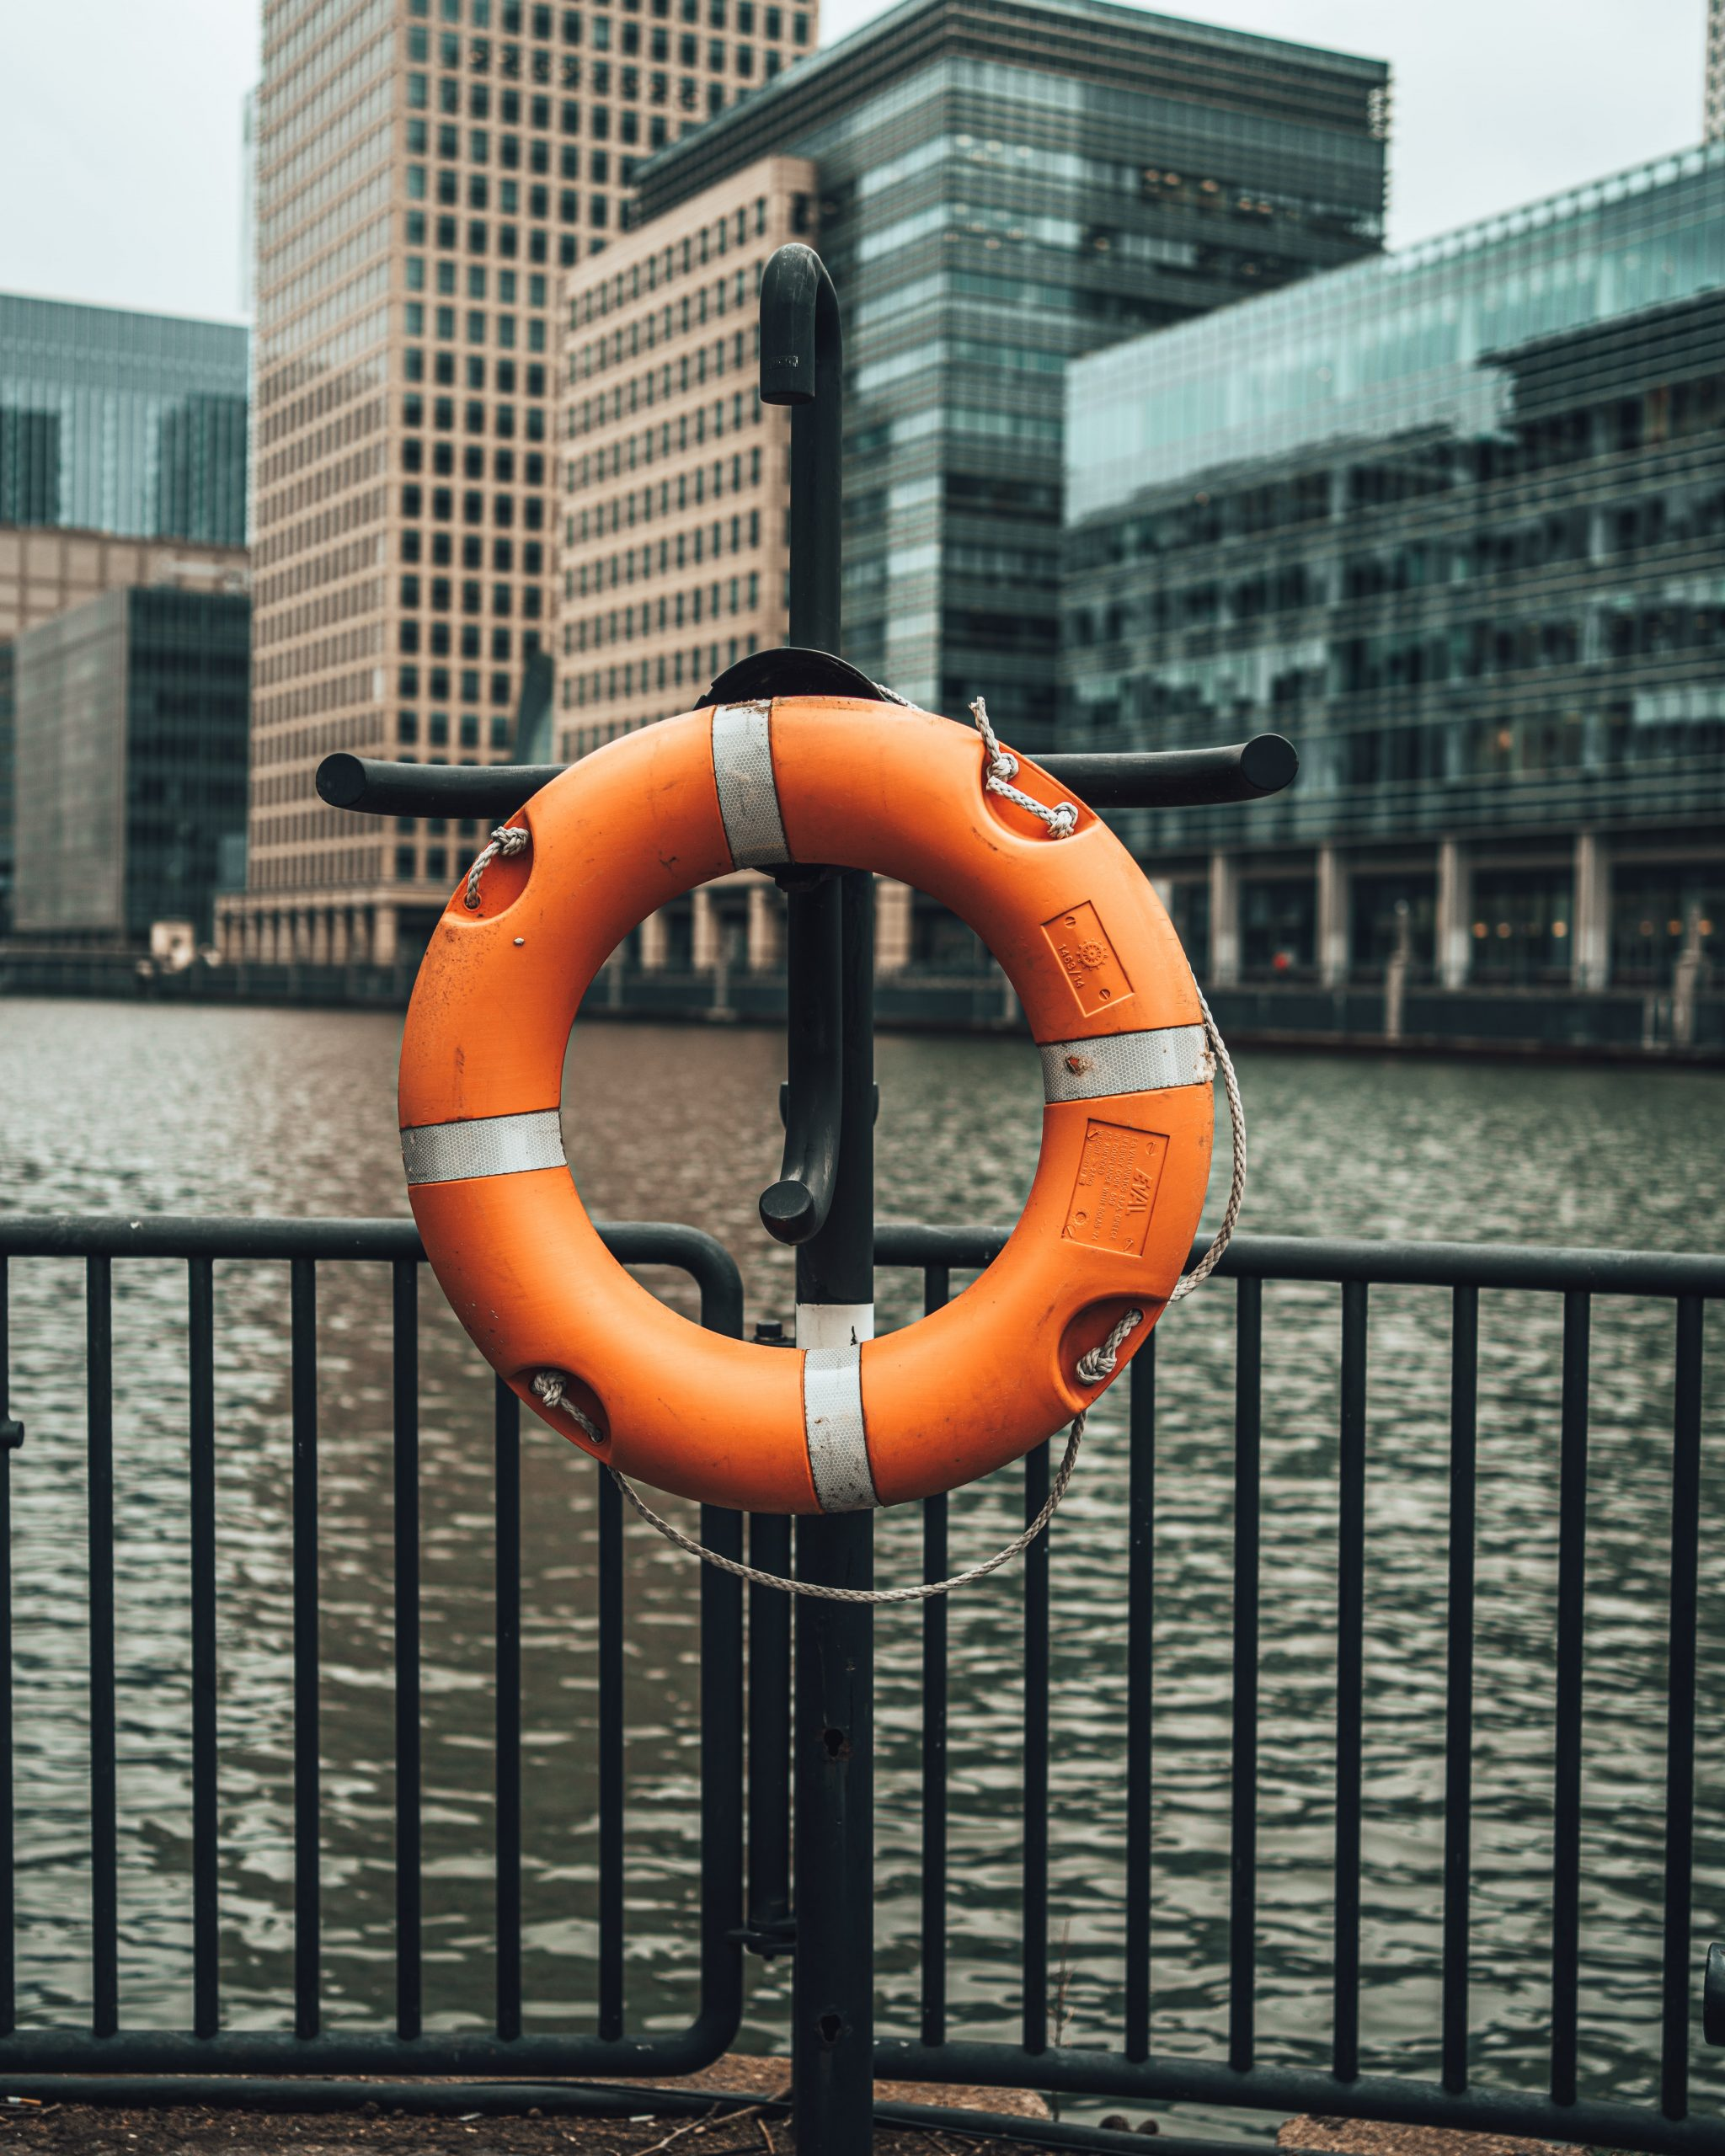 Life Ring Buoy to illustrate the notion of drowning, being overwhelmed by communications